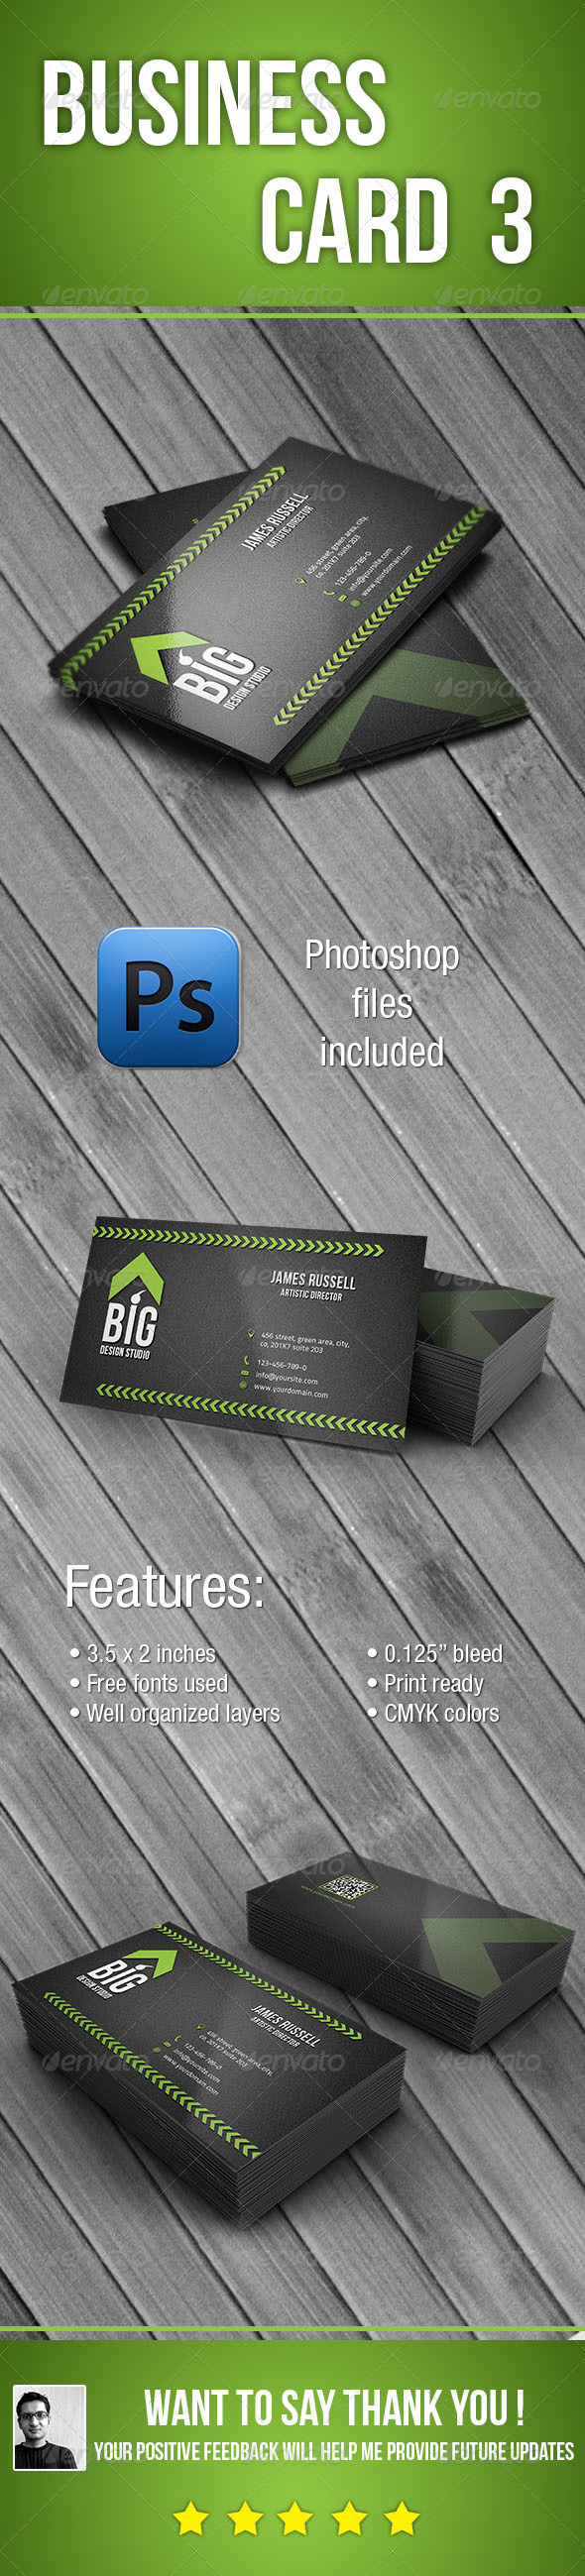 Business Card 3 - Creative Business Cards